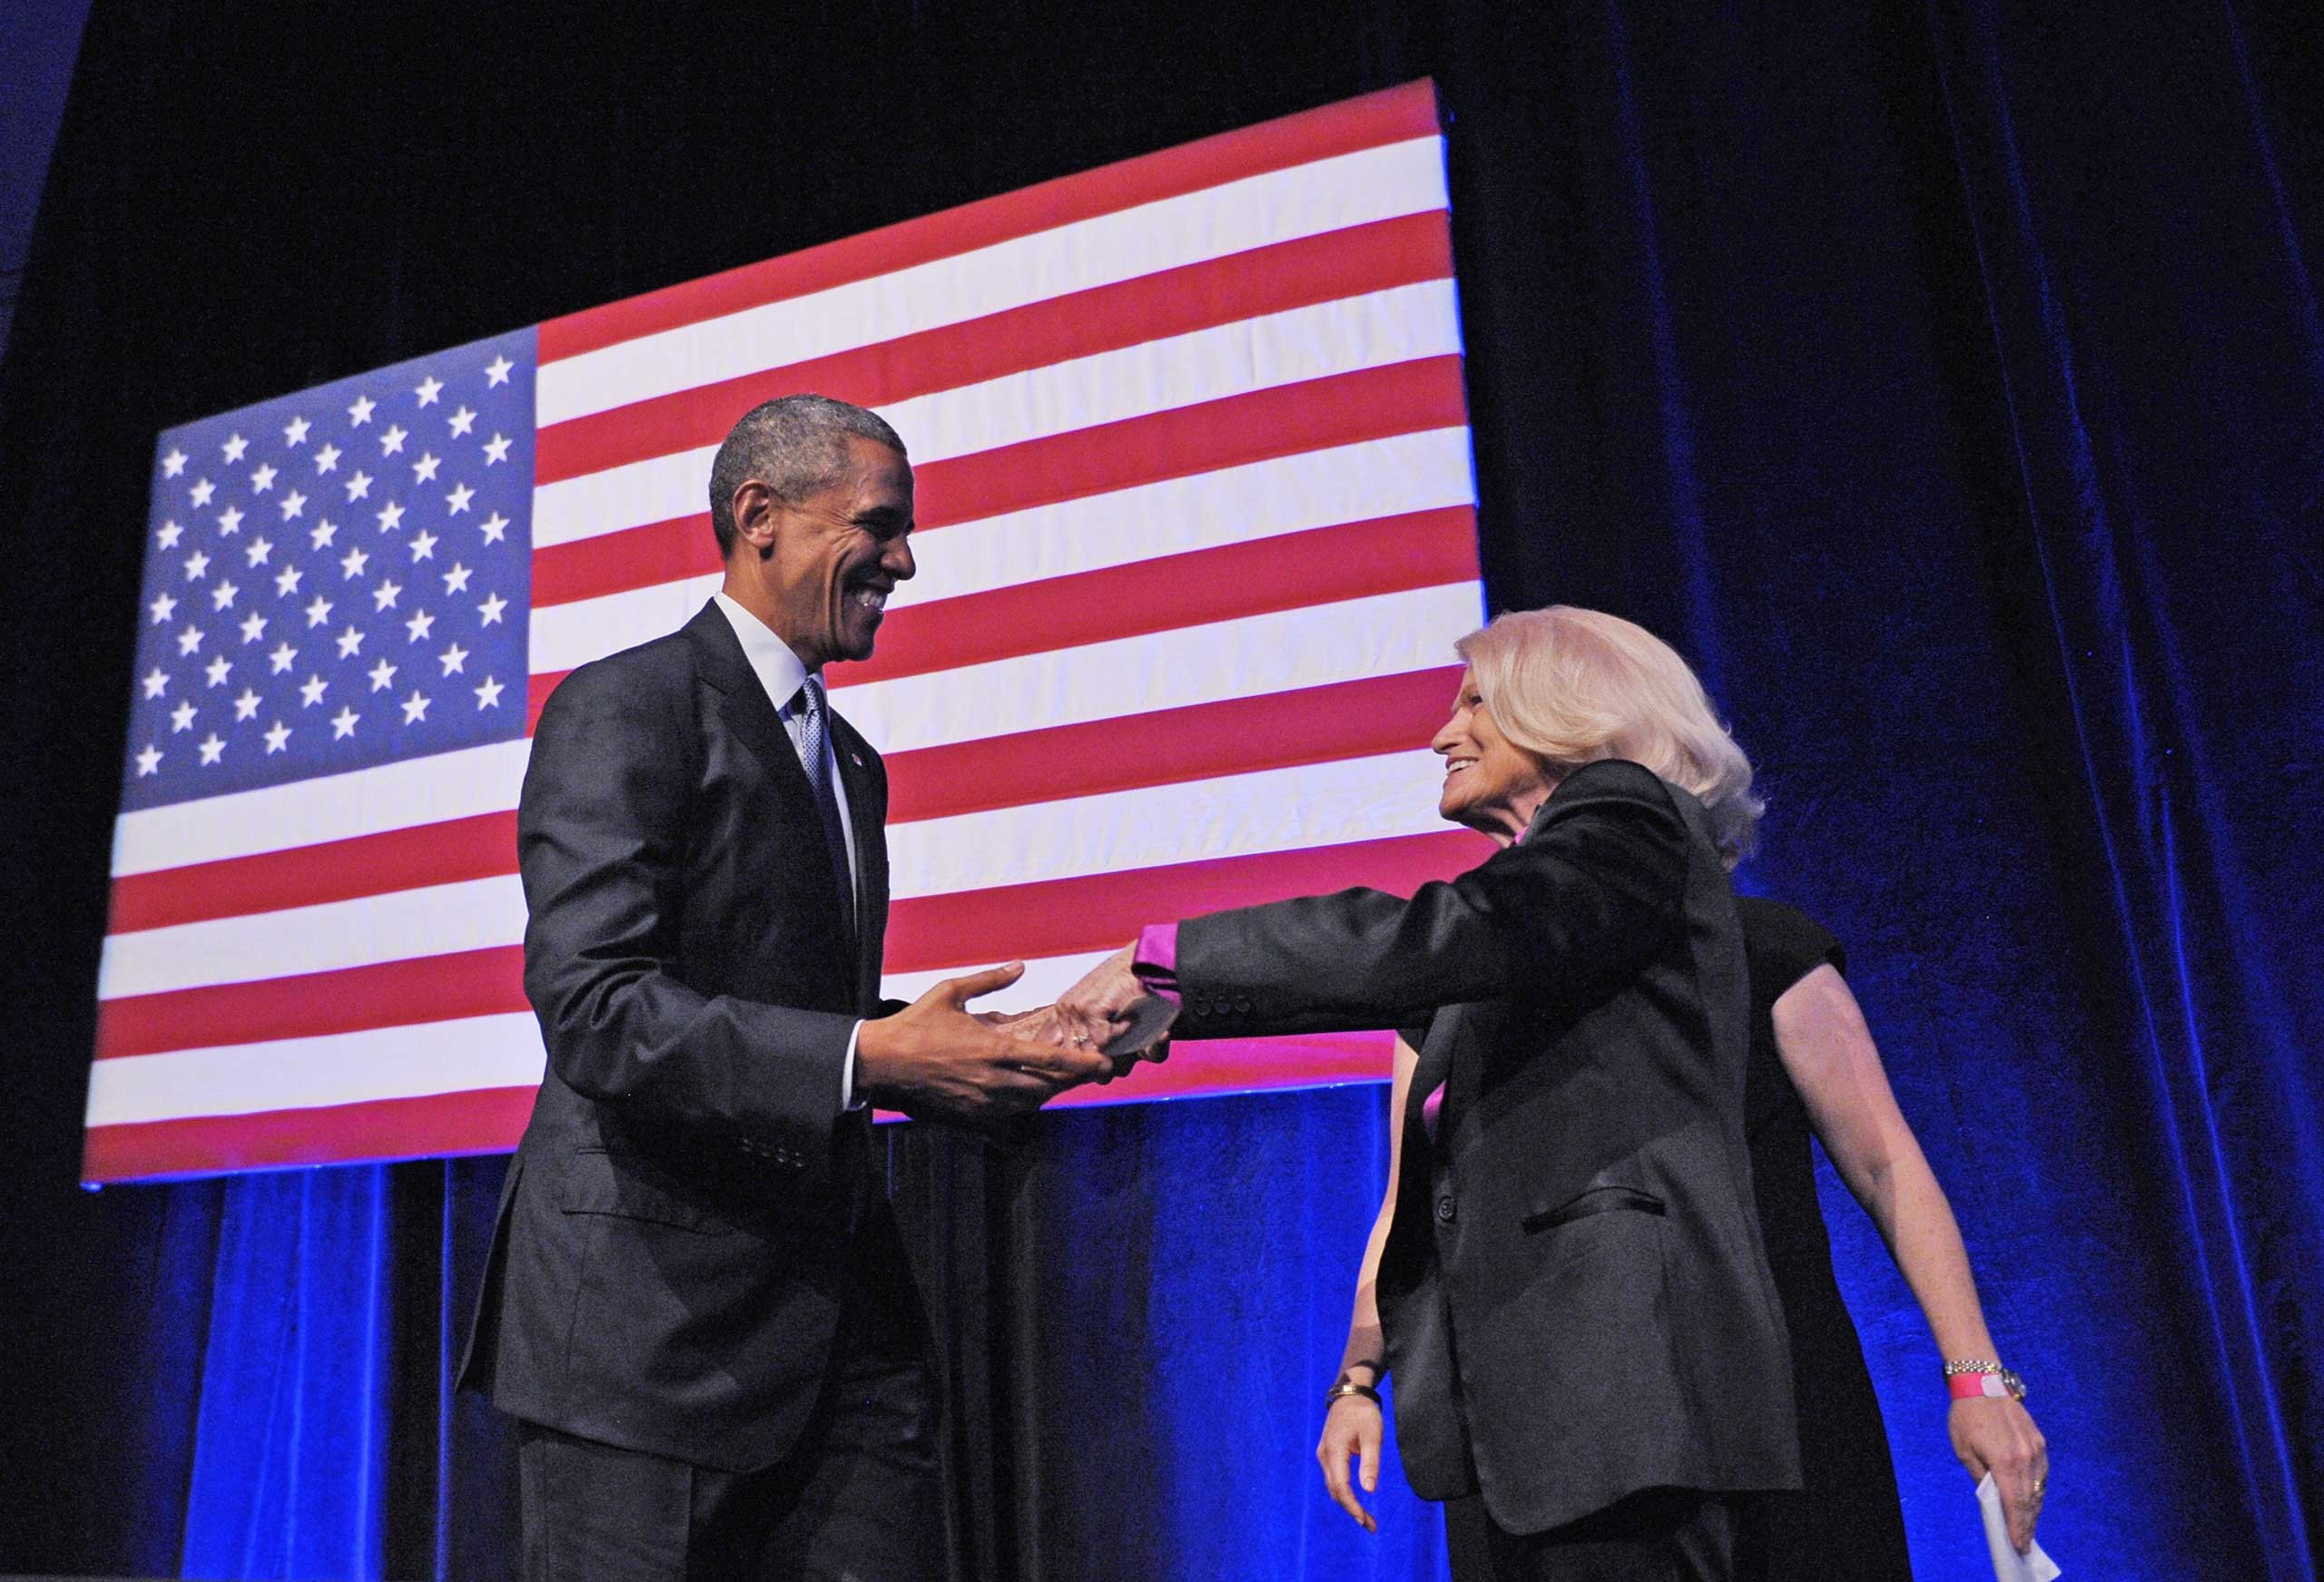 President Barack Obama holds hands with Edie Windsor after she introduced him during the Democratic National Committee LGBT Gala at Gotham Hall in New York City on June 17, 2014.